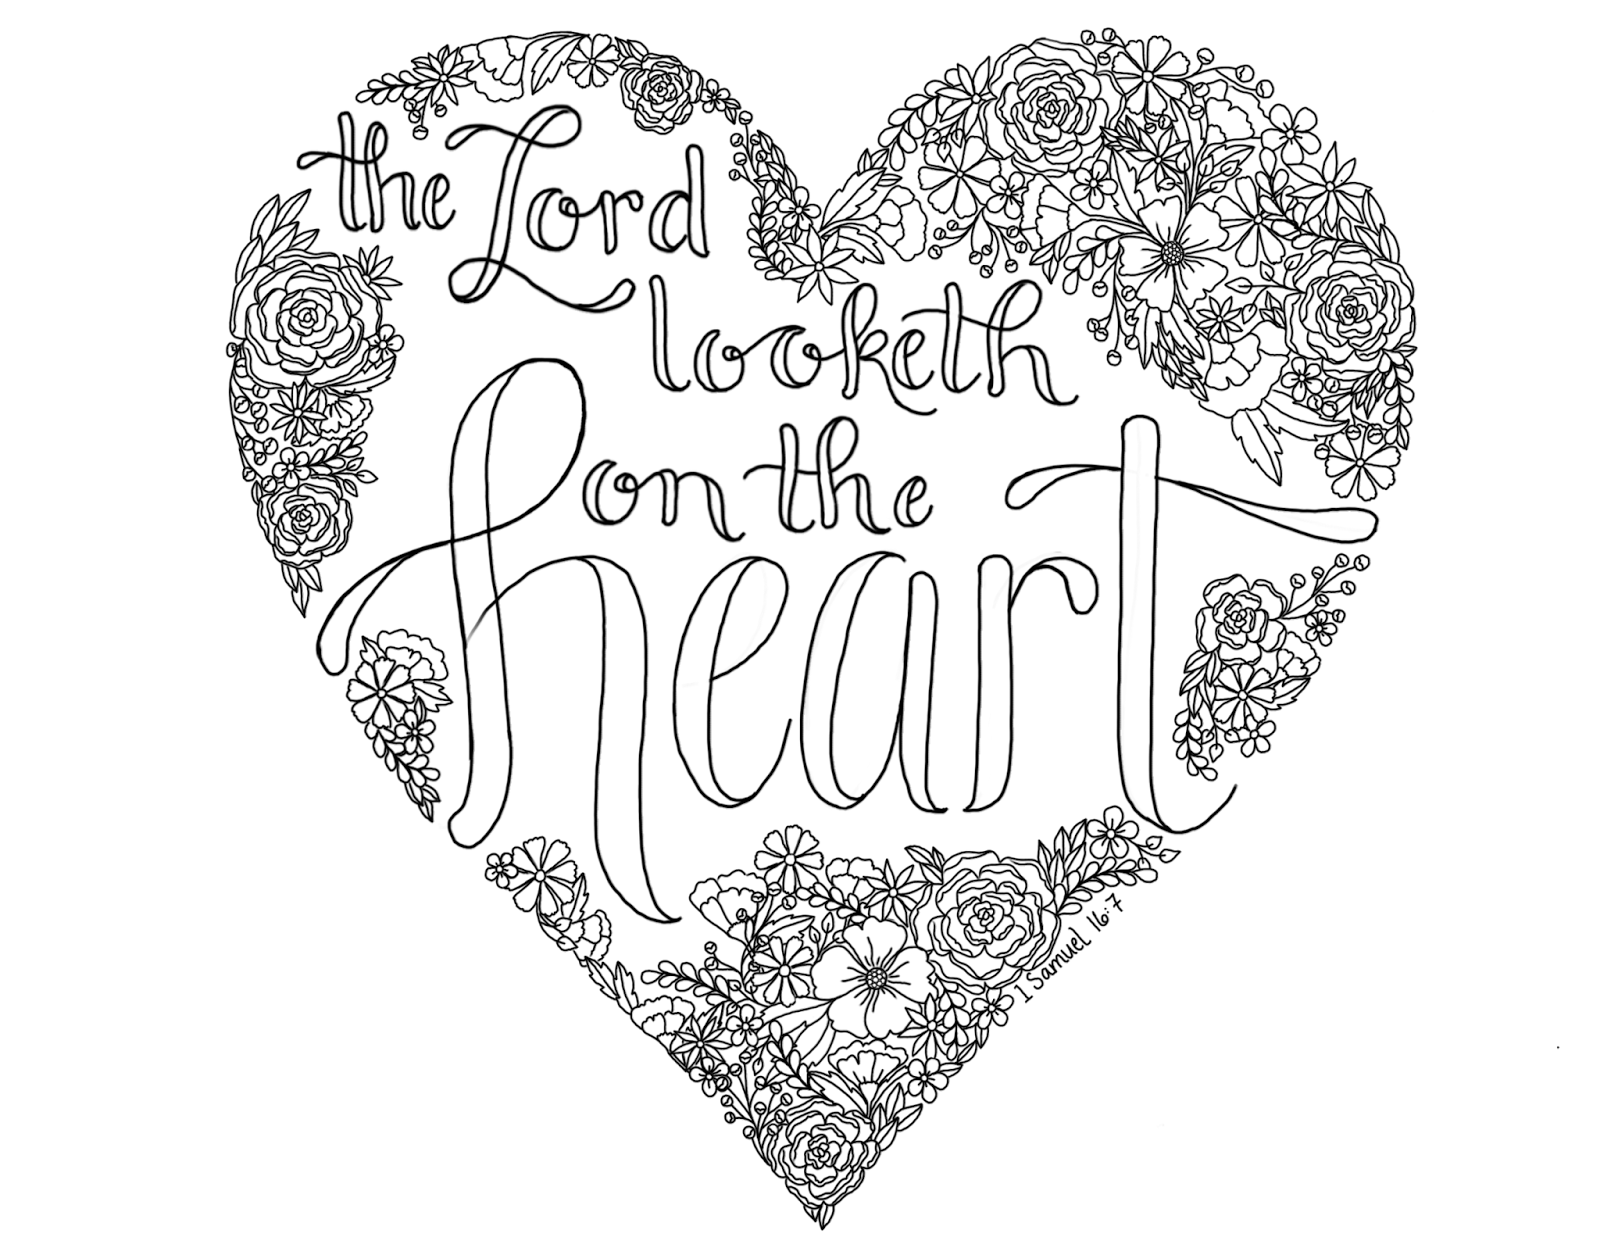 1Samuel 16 7 just what i squeeze in The Lord looketh